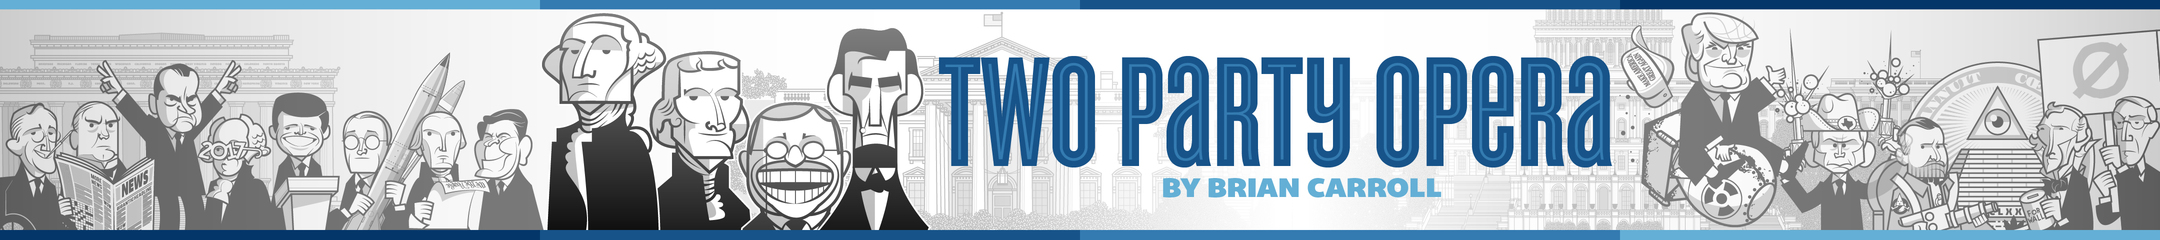 Two Party Opera